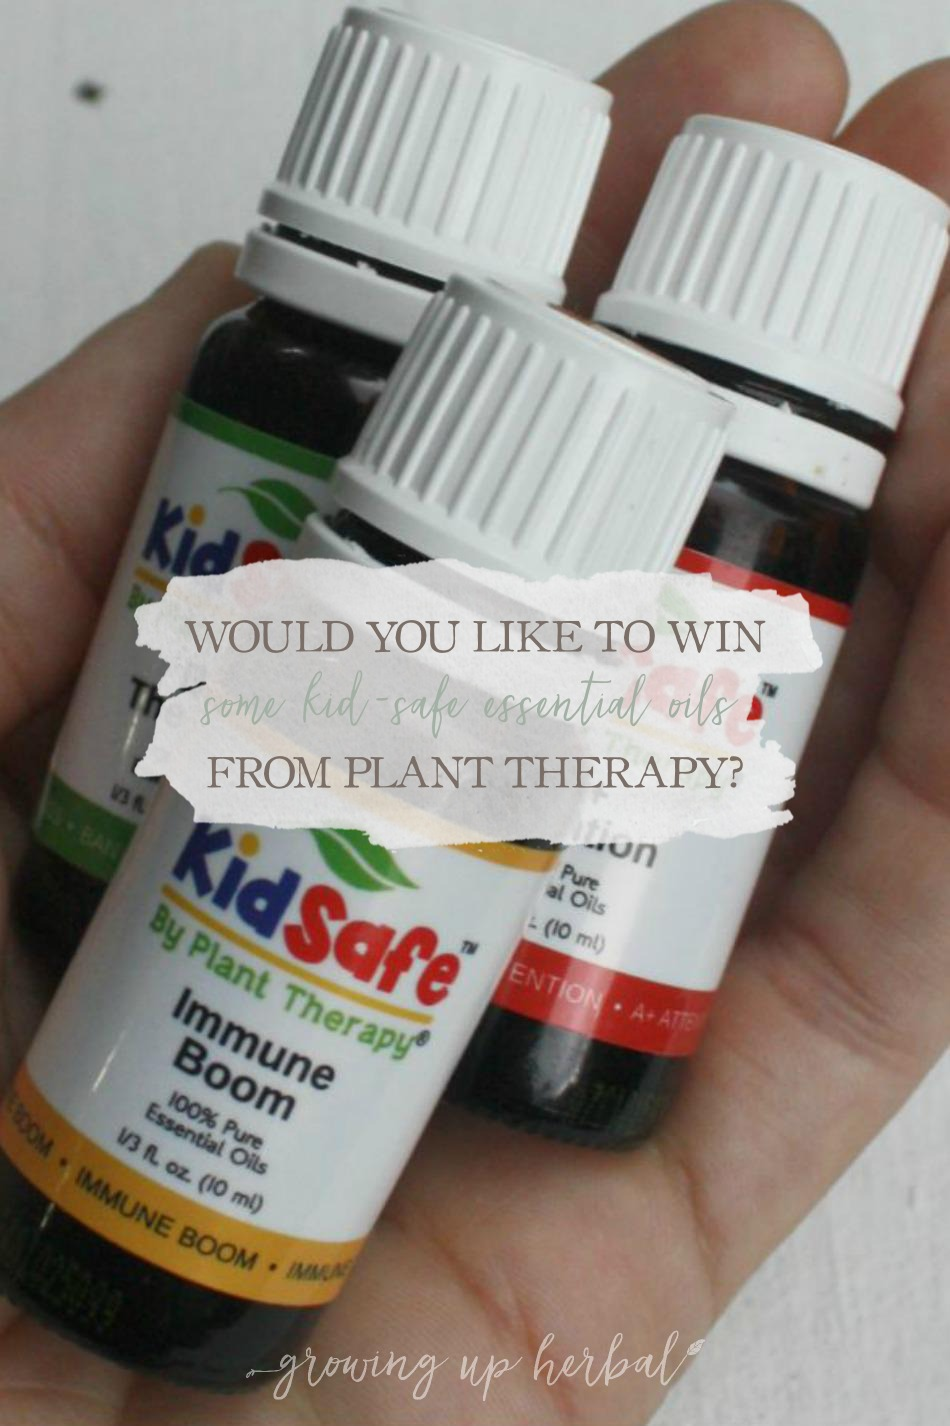 Want To Win Some KidSafe Essential Oils From Plant Therapy? Here's How! | Growing Up Herbal | Win some Plant Therapy KidSafe essential oils today!